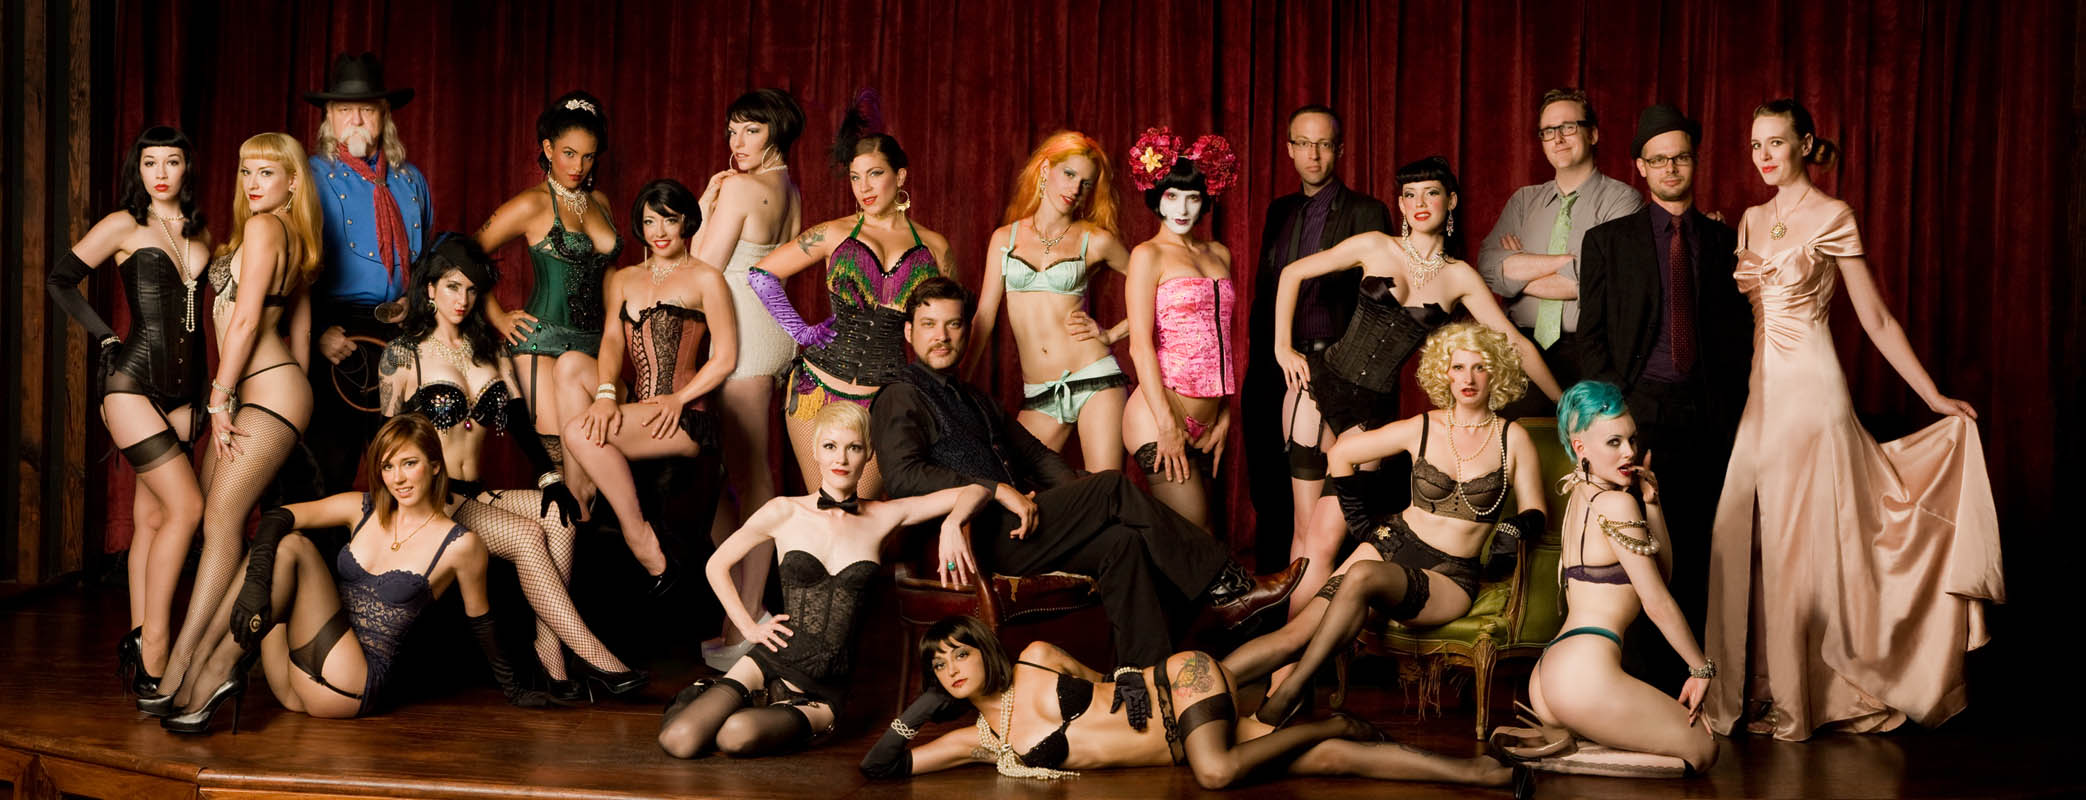 Wasabassco Burlesque Troupe, Brooklyn, Ny